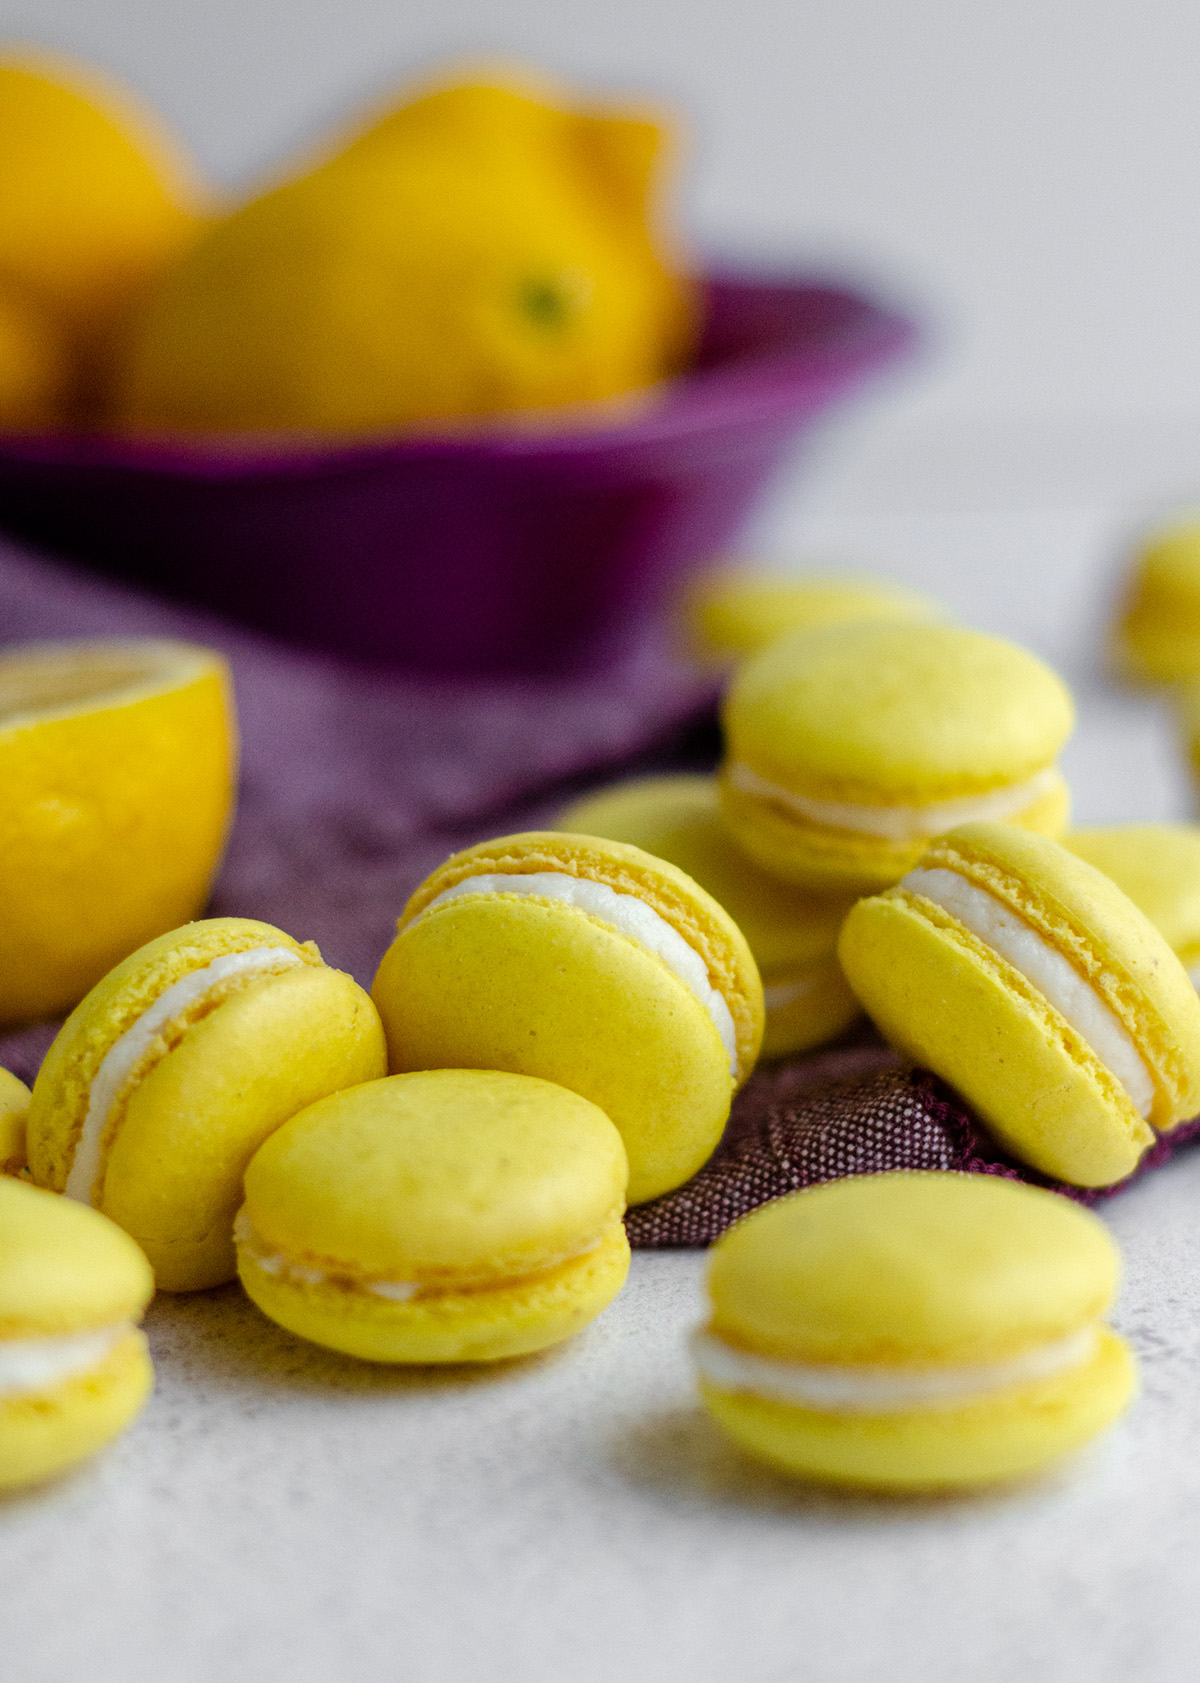 lemon macarons scattered around on a purple kitchen towel